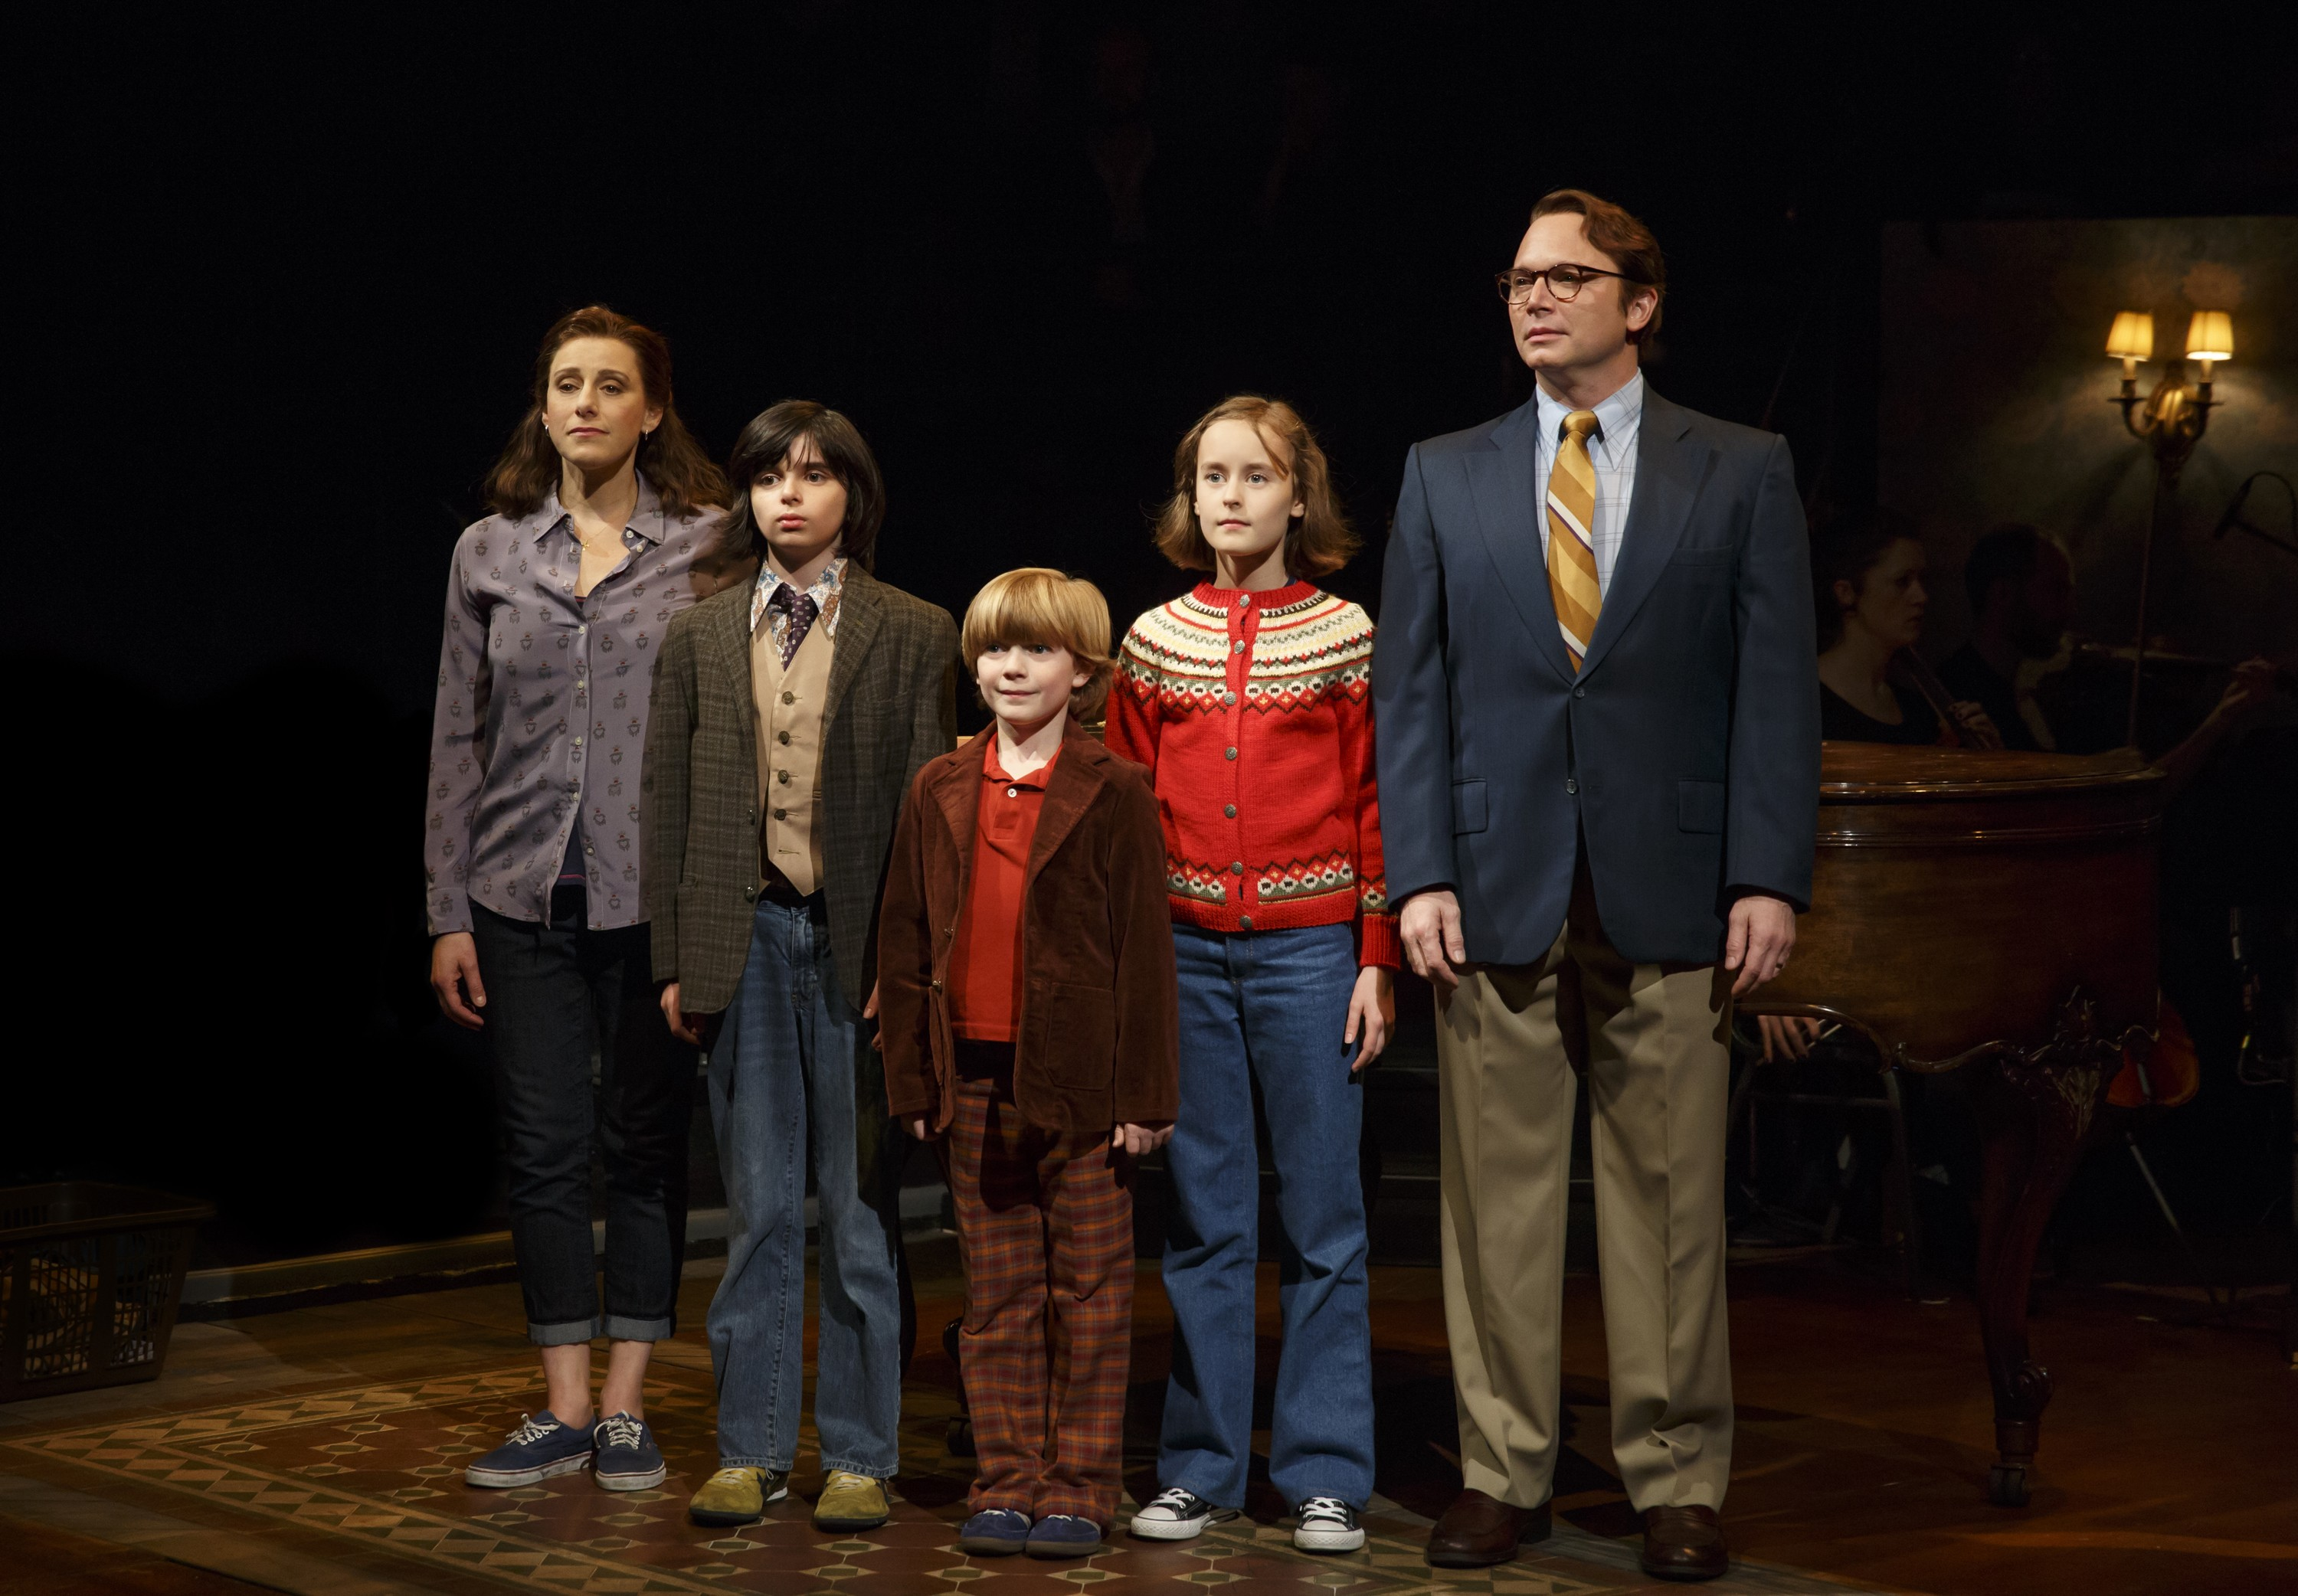 fun home alison bechdel An ideal family is the one that sacrifices willingly for each other, even to suffer for one another - fun home by alison bechdel introduction but a family in the most general terms does not necessarily have to meet that requirement.